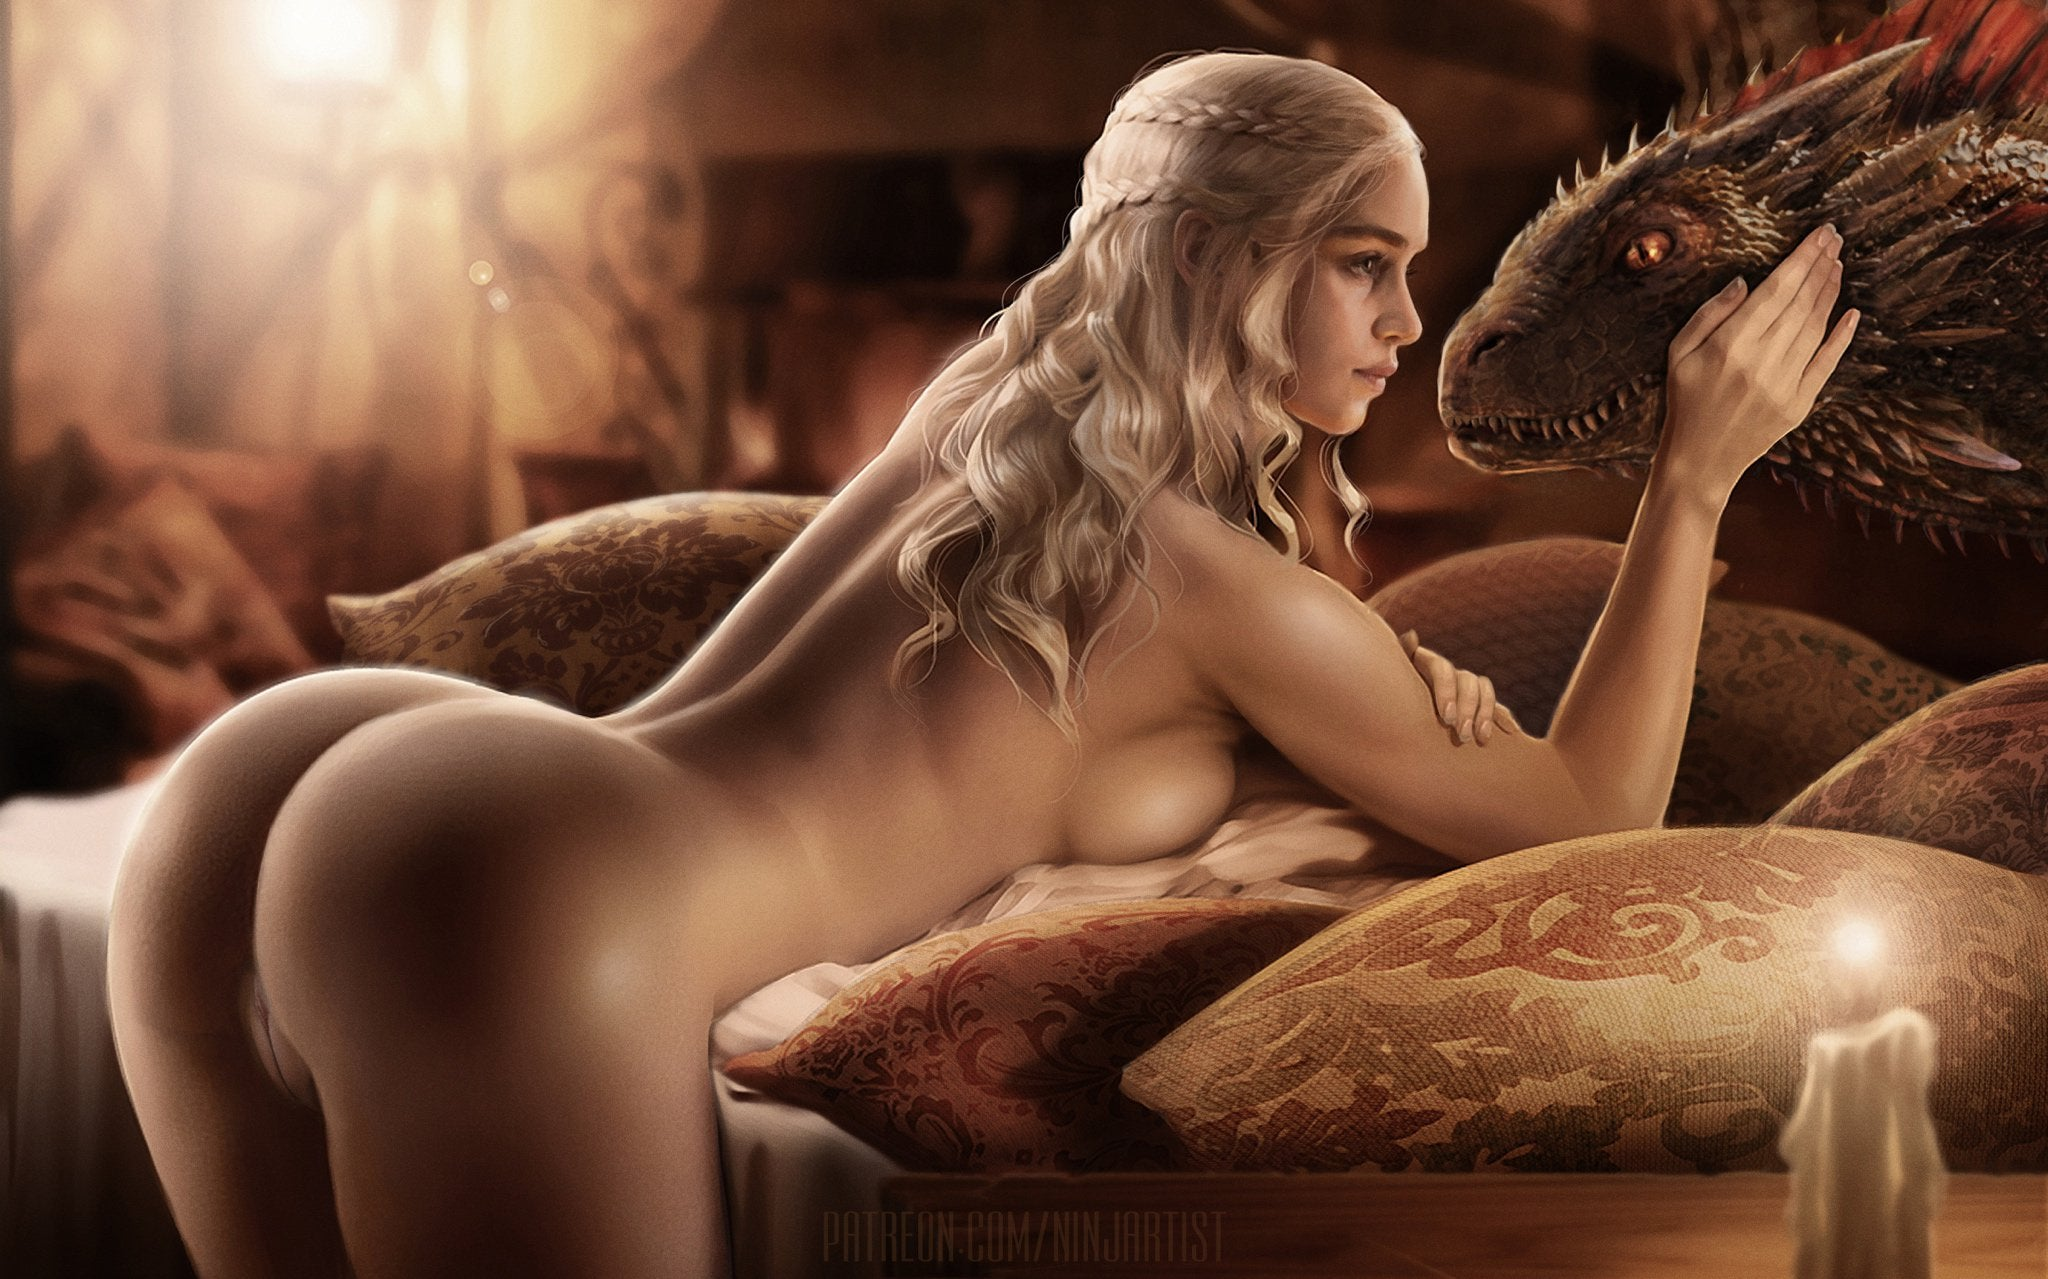 Game of thrones r34